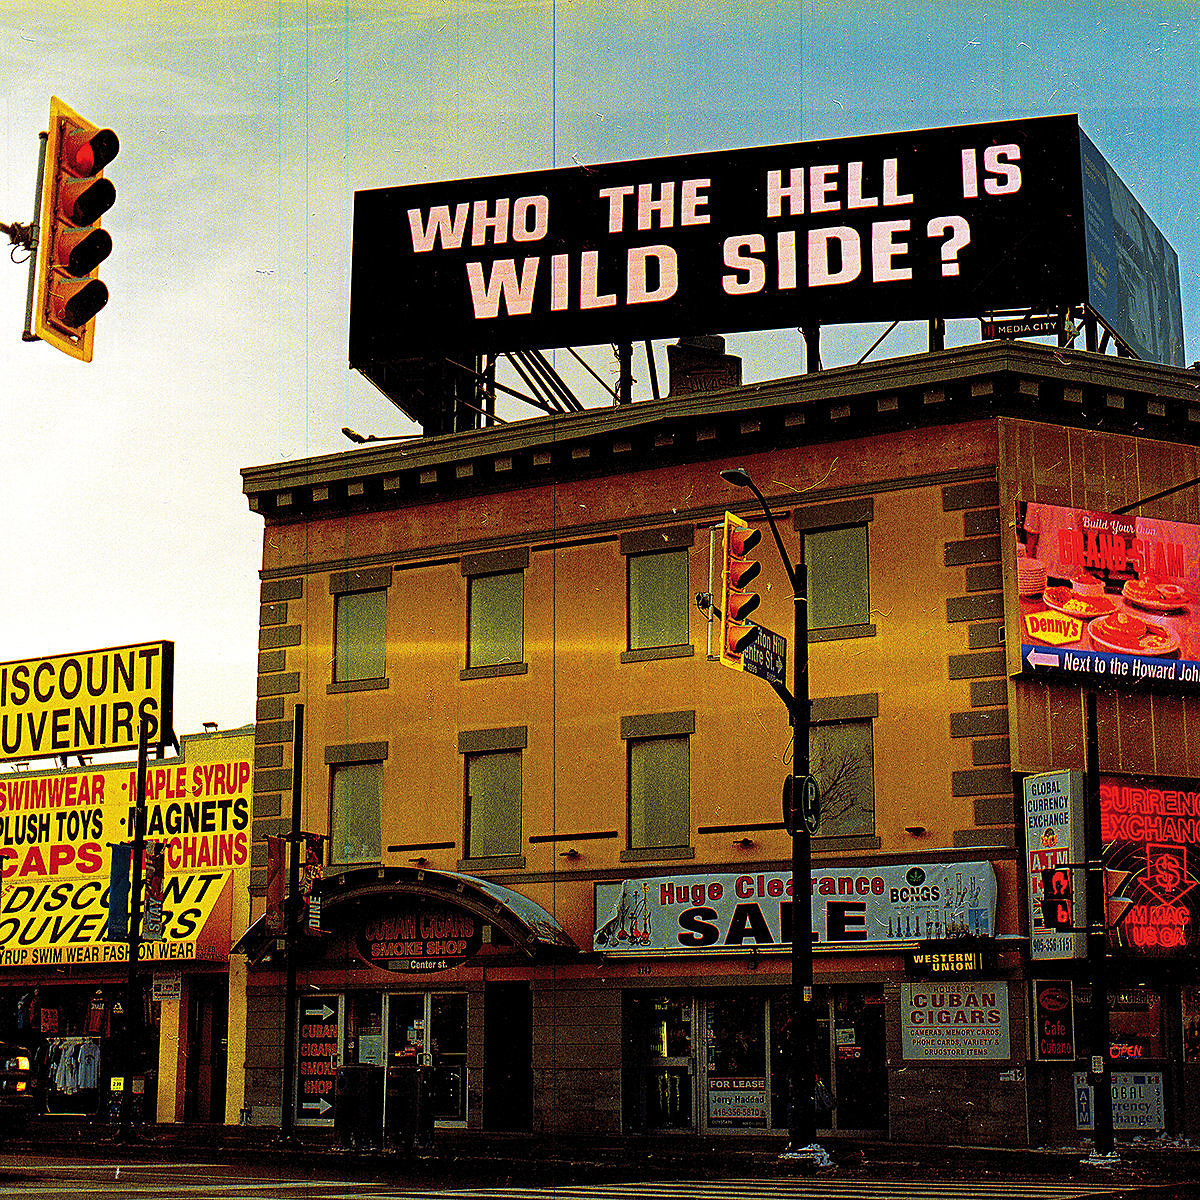 Who The Hell Is WILD SIDE